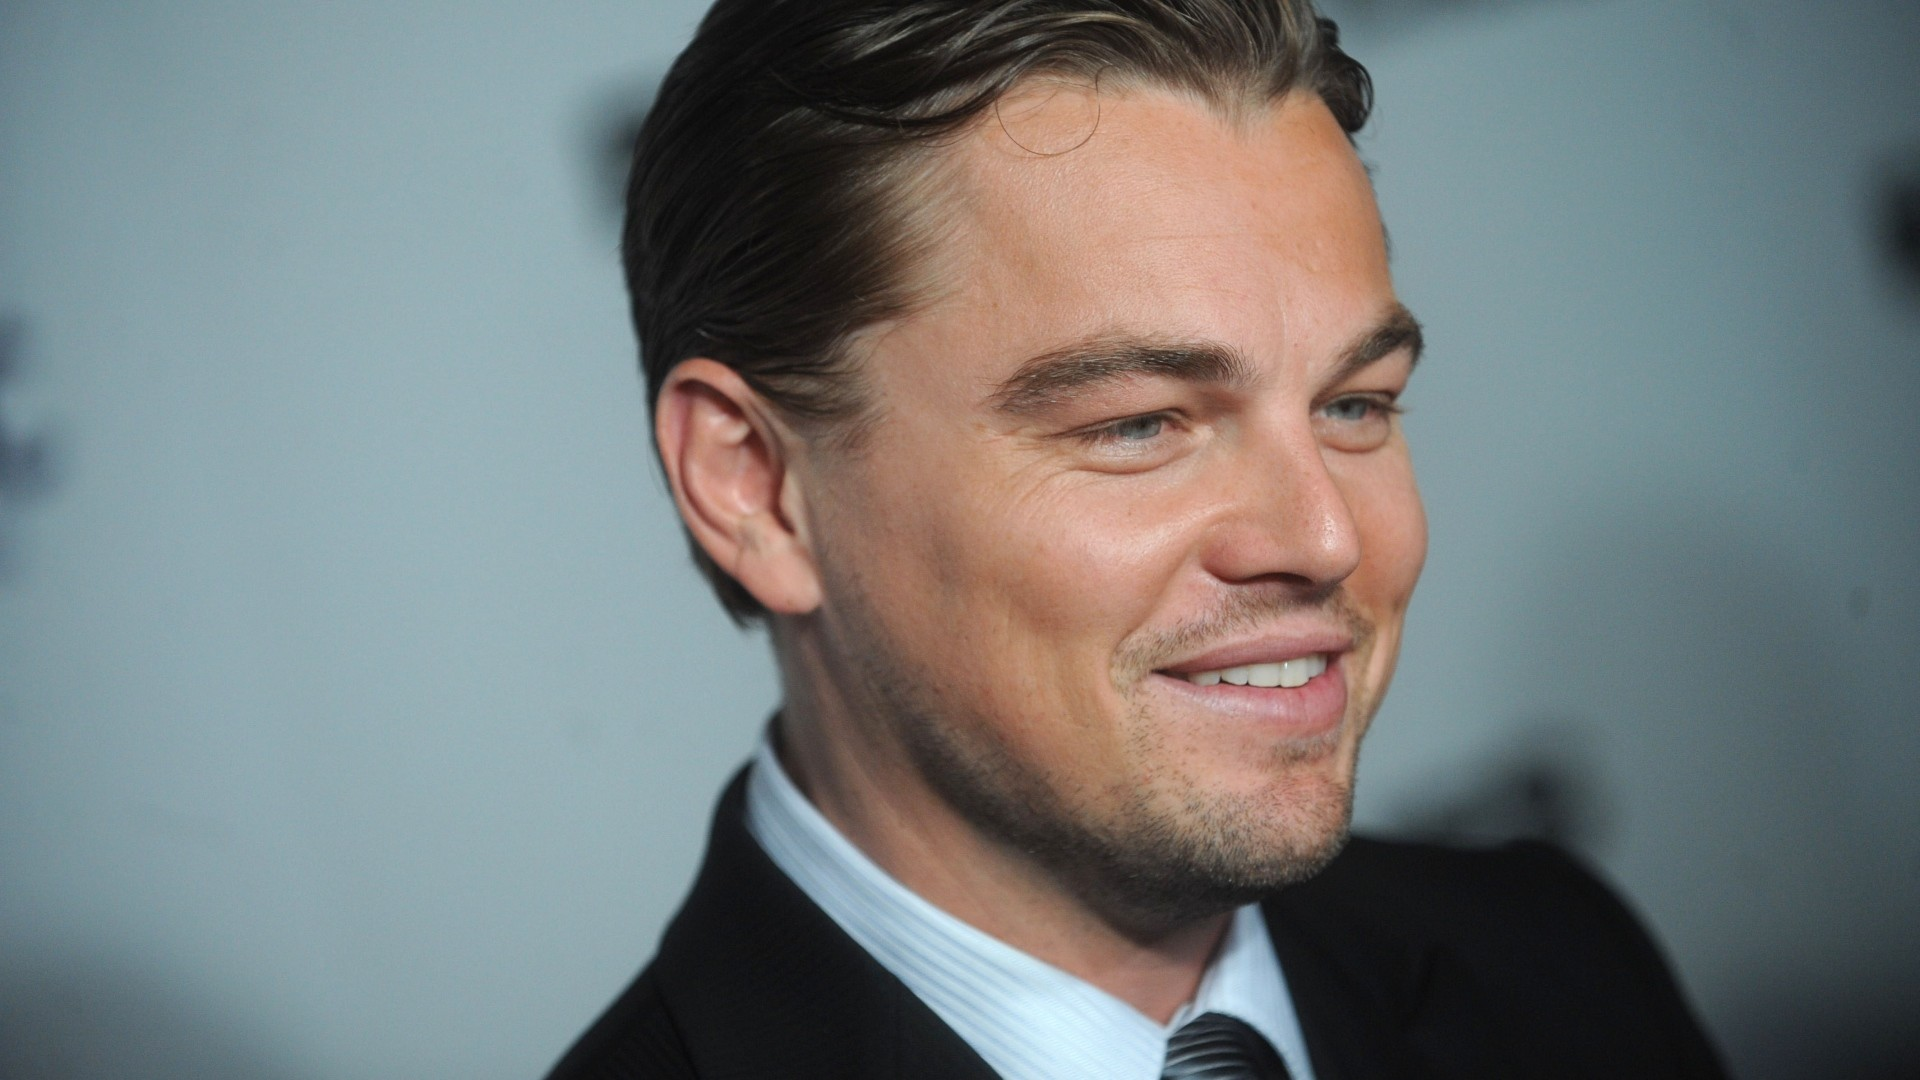 1920x1080  Wallpaper leonardo dicaprio, man, actor, costume, smile, hair,  blue